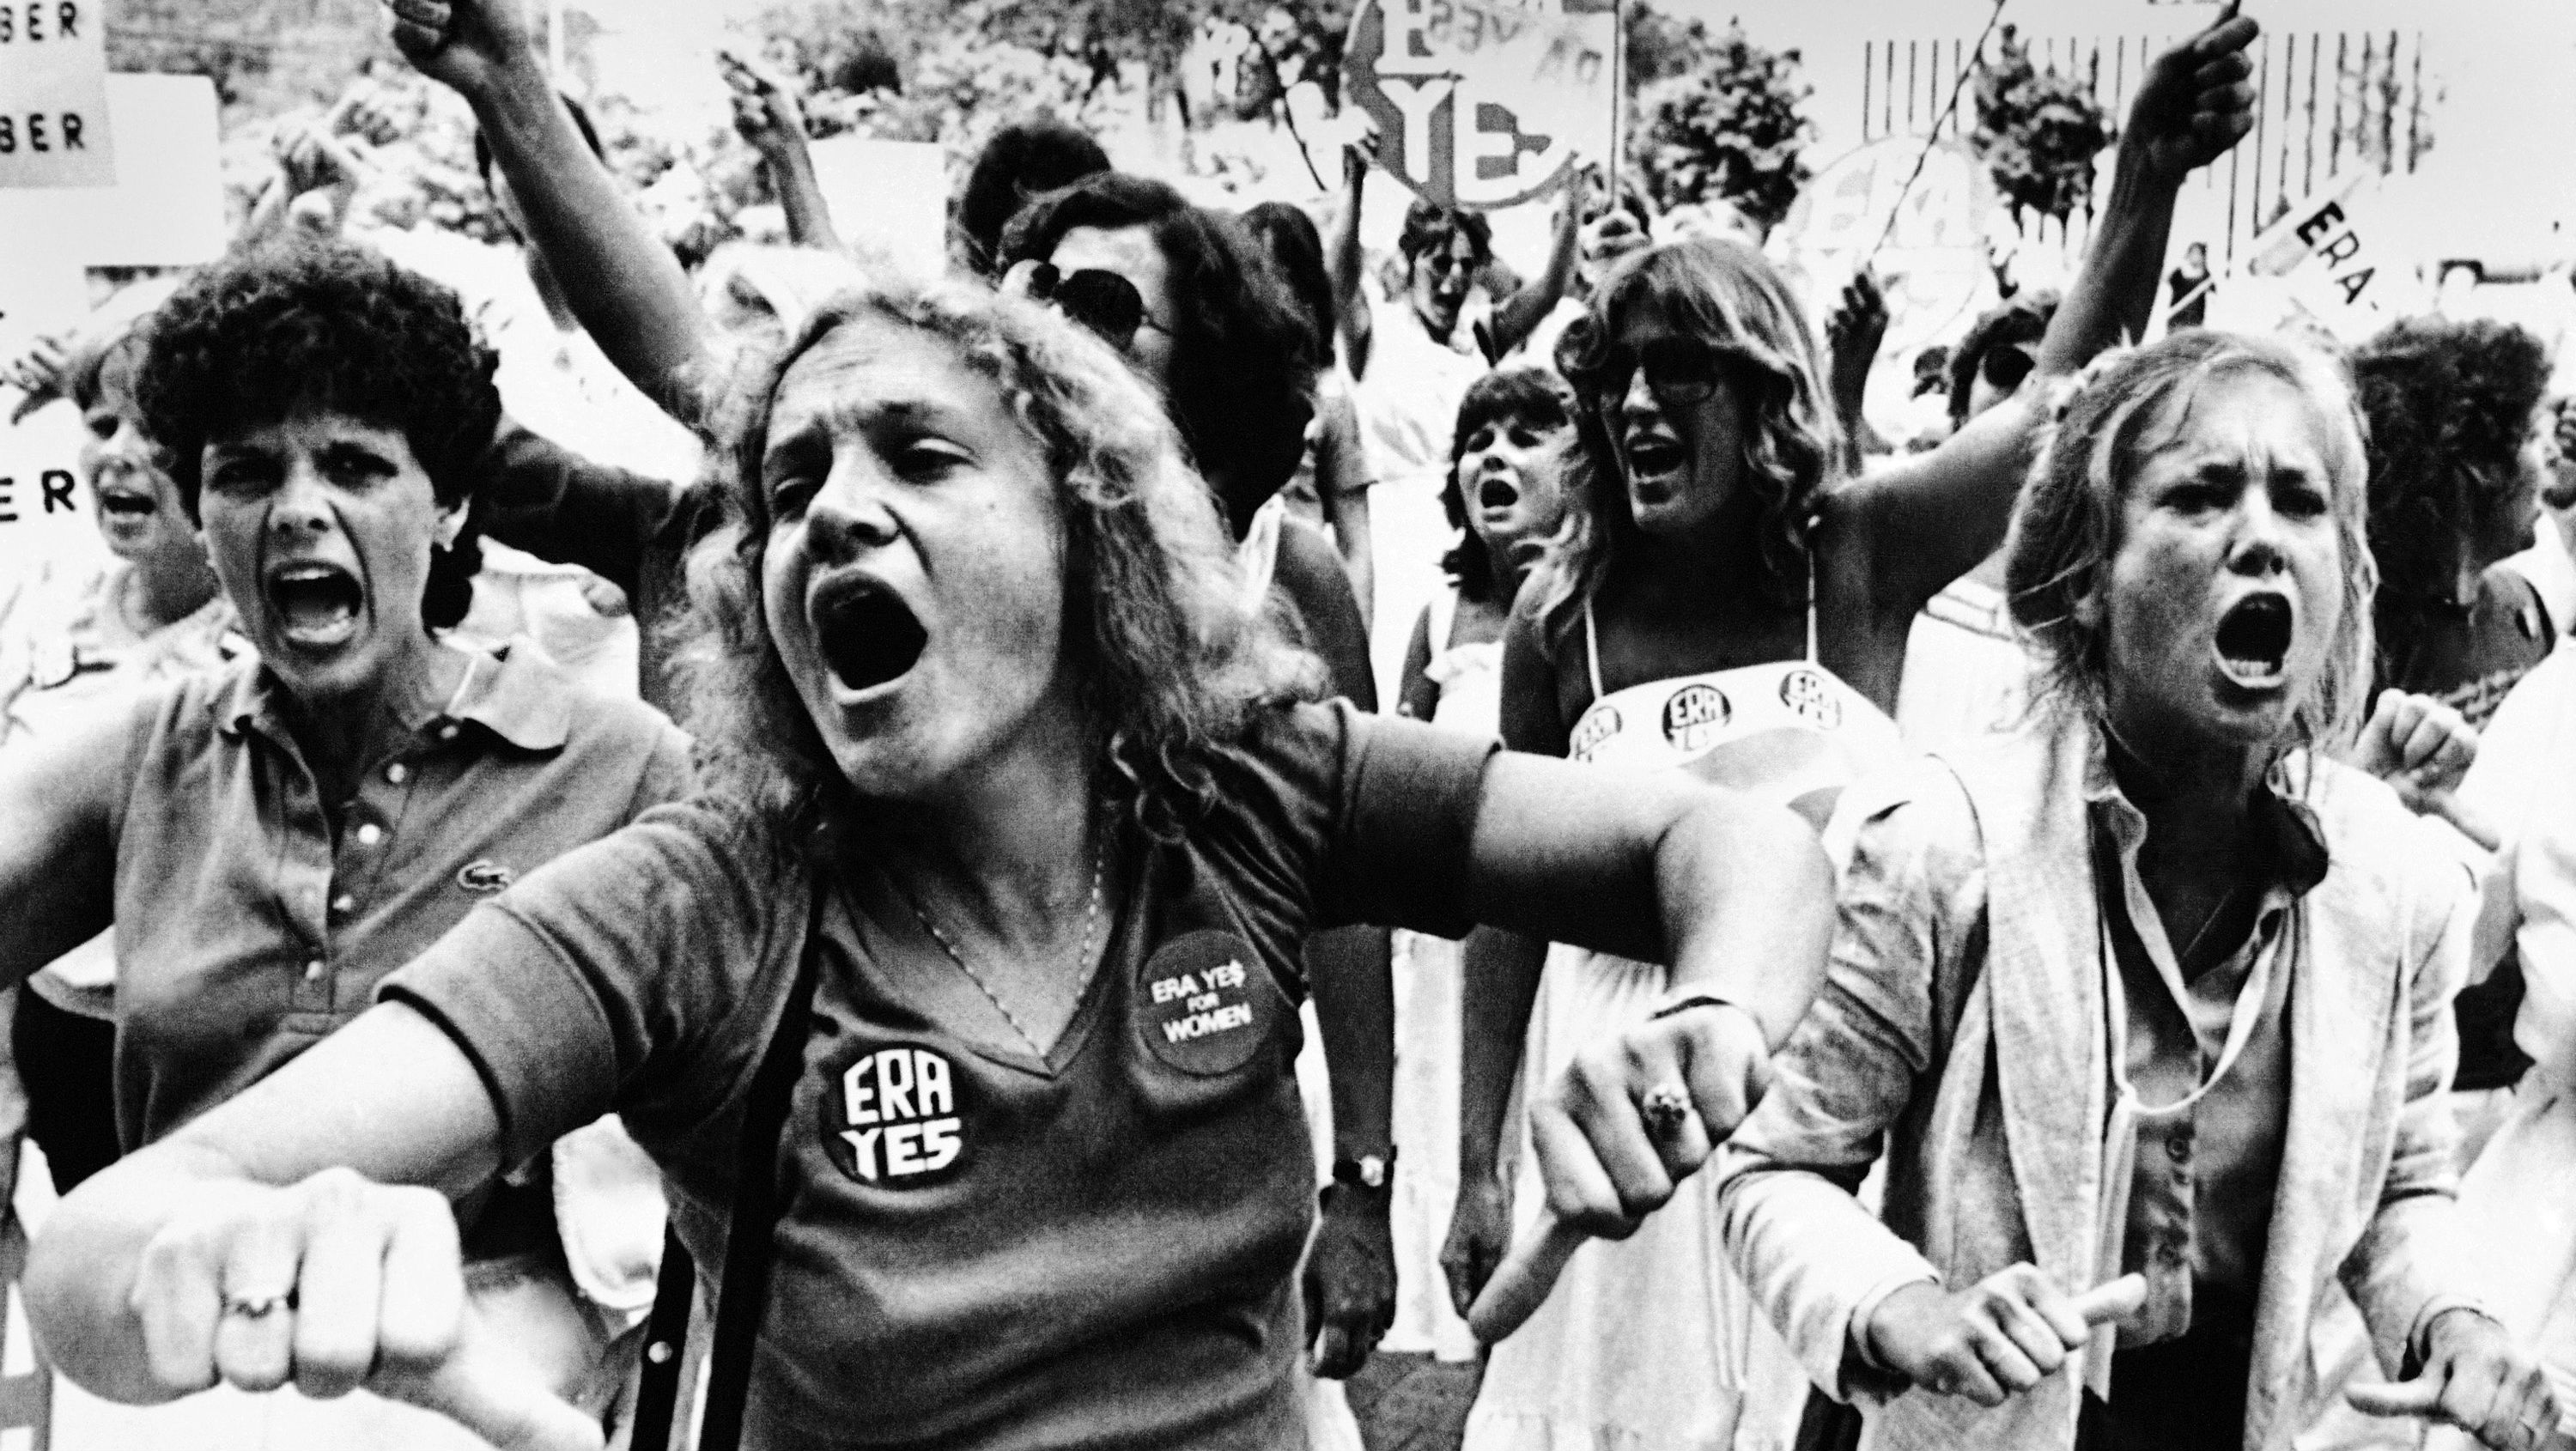 """Equal Rights Amendment supporters voice their disapproval of the 22-16 vote against E.R.A. in the Florida Senate as they streamed out of the capitol for a demonstration and shouted """"vote them out"""" in response to the Senate vote, June 21, 1982. (AP Photo)"""